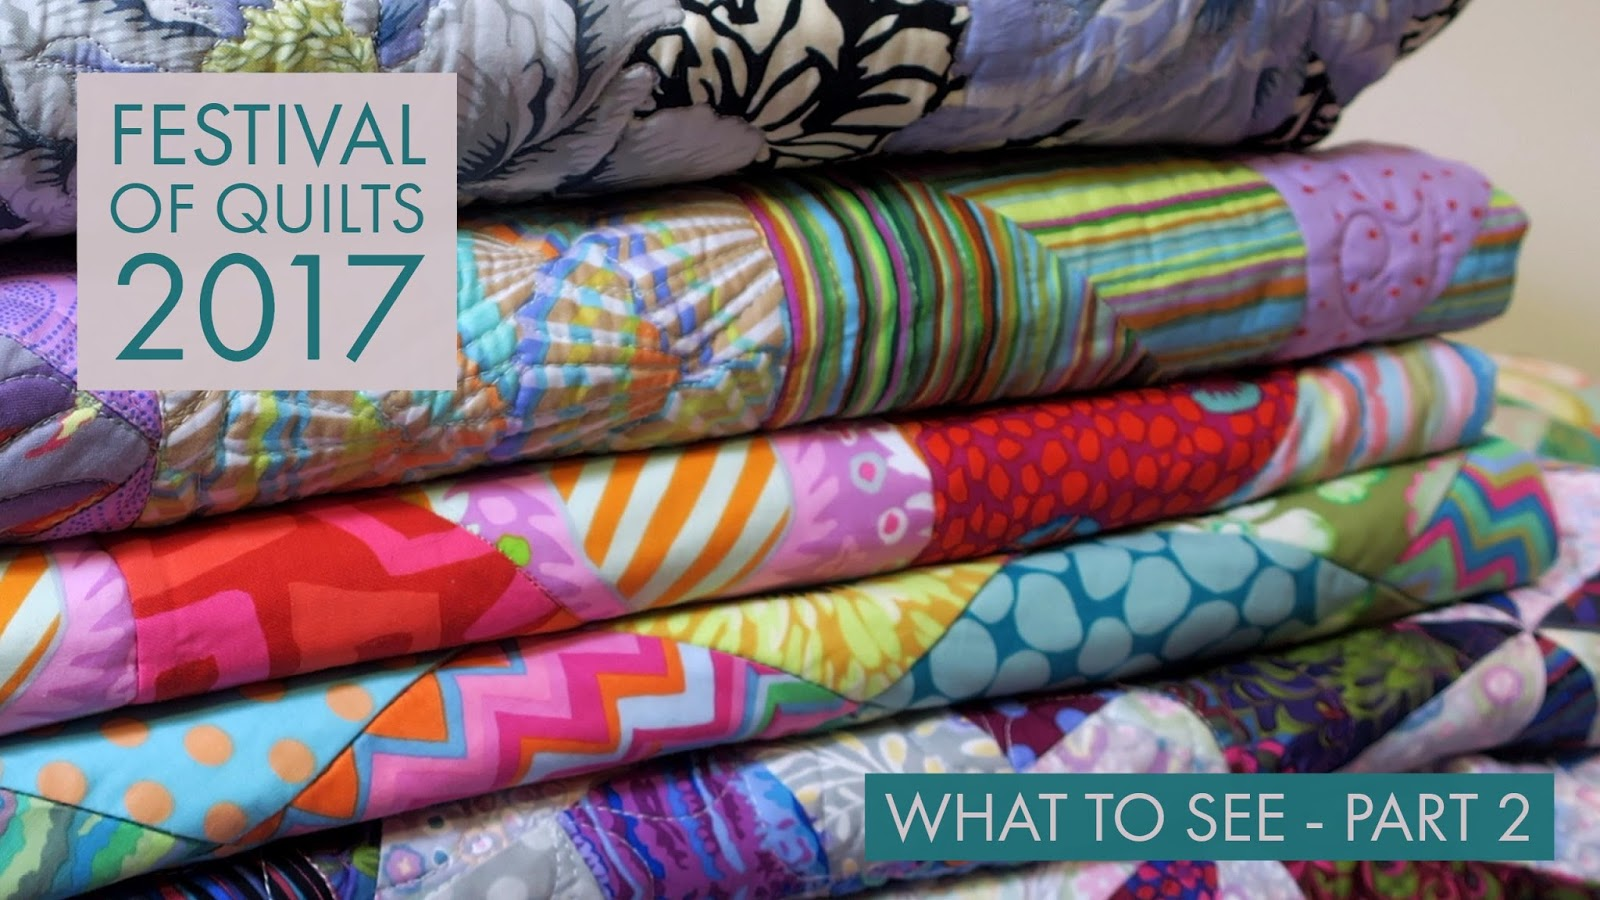 Quilt Festival Birmingham Festival Of Quilts What To See Part 2